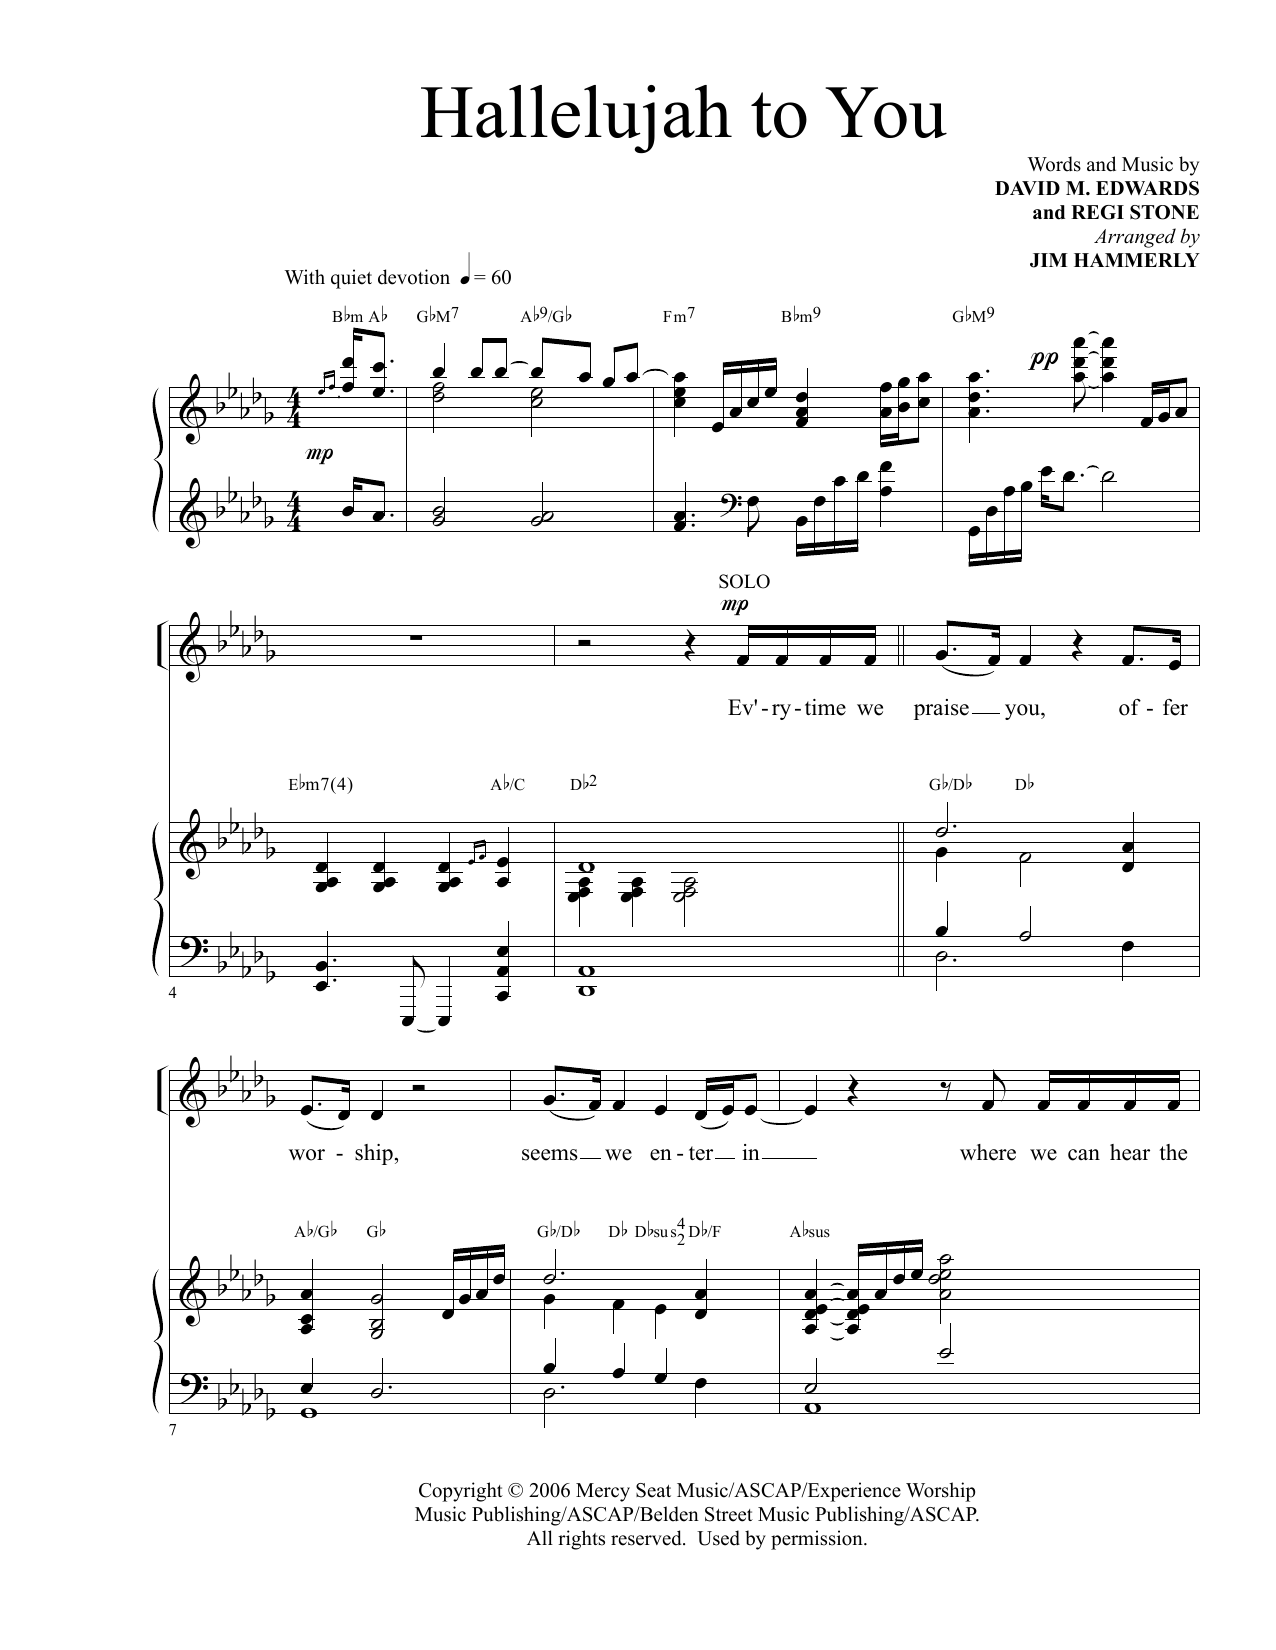 David M. Edwards and Regi Stone Hallelujah To You (arr. Jim Hammerly) sheet music notes and chords. Download Printable PDF.